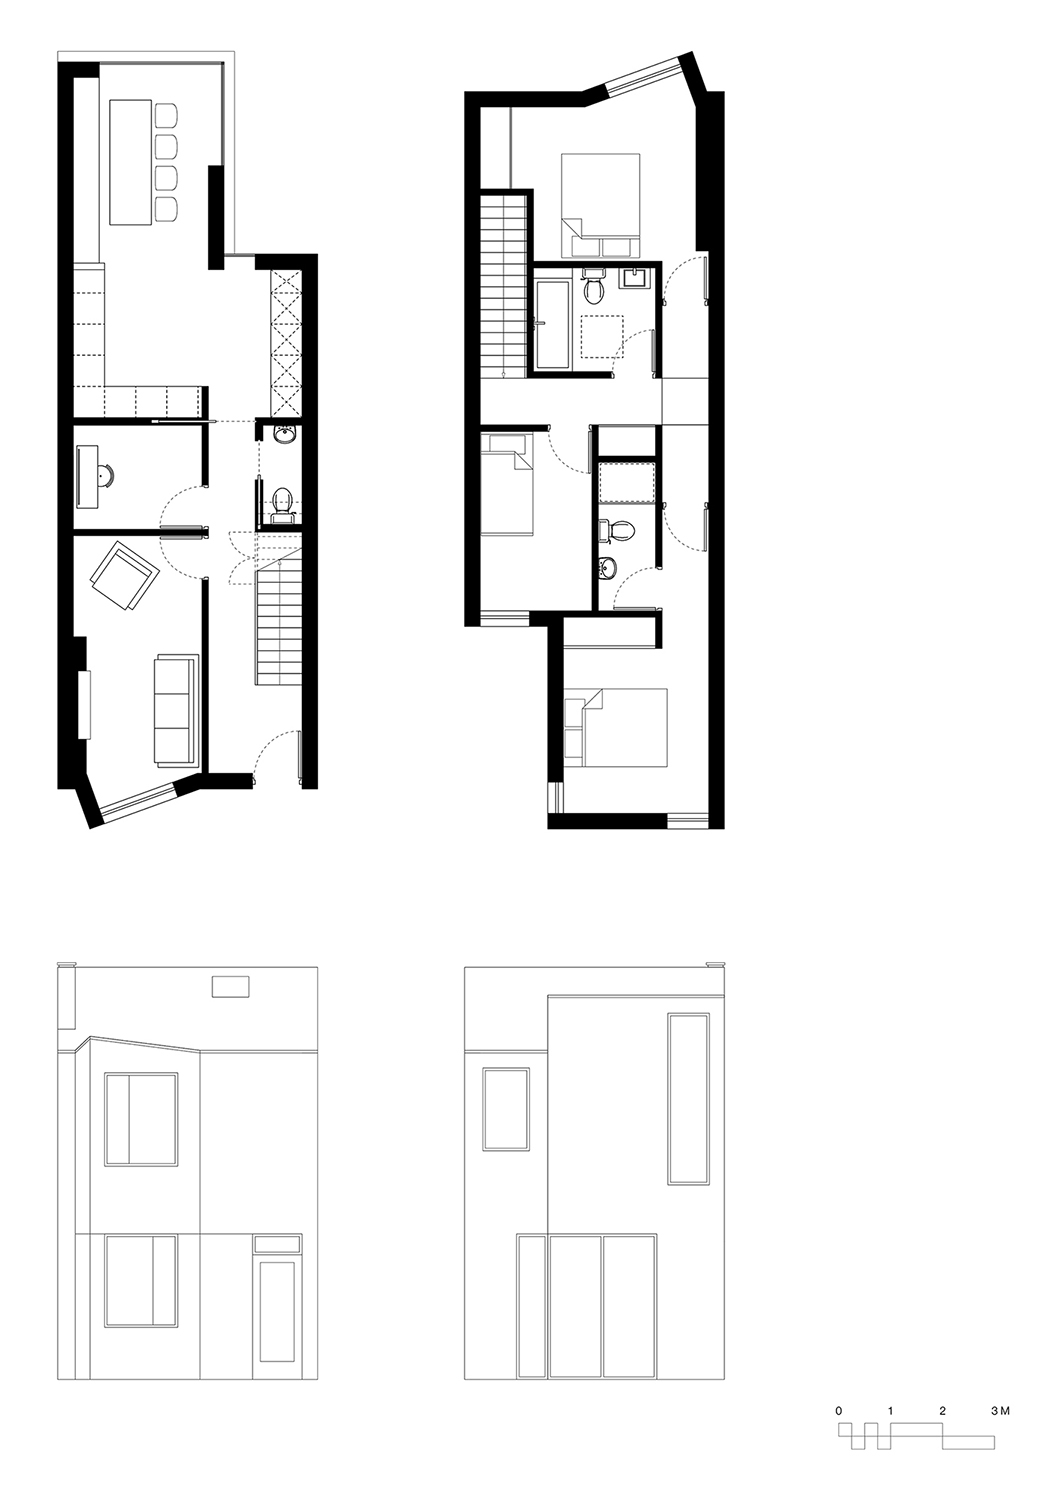 Paul Cashin Architects / Three New Houses, Southampton, Hampshire